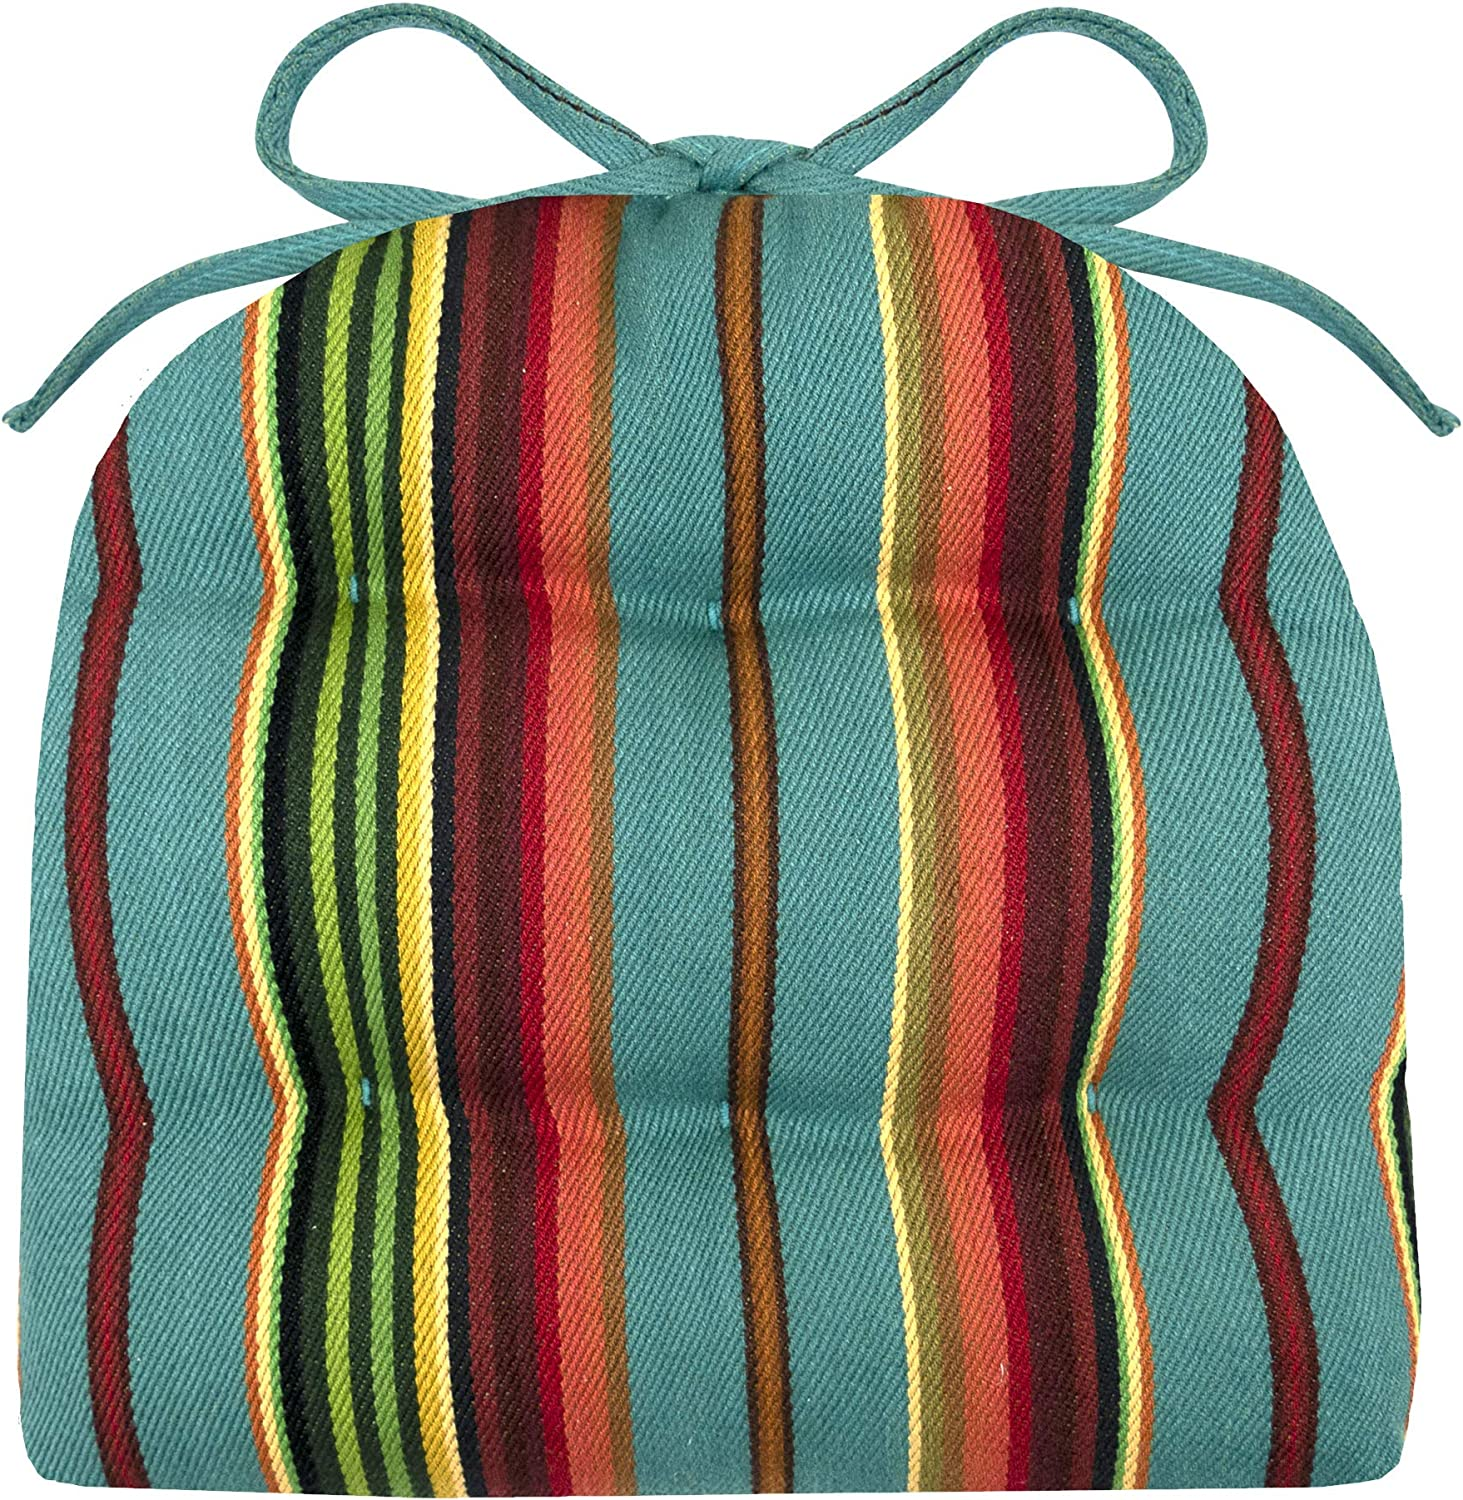 "Barnett Home Decor Santa Fe Serape Stripe 14"" Industrial Chair Cushion with Ties - Fits Most tolix Style Metal Chairs - Made in USA - Reversible - Machine Washable (Striped/Southwest/Teal)"